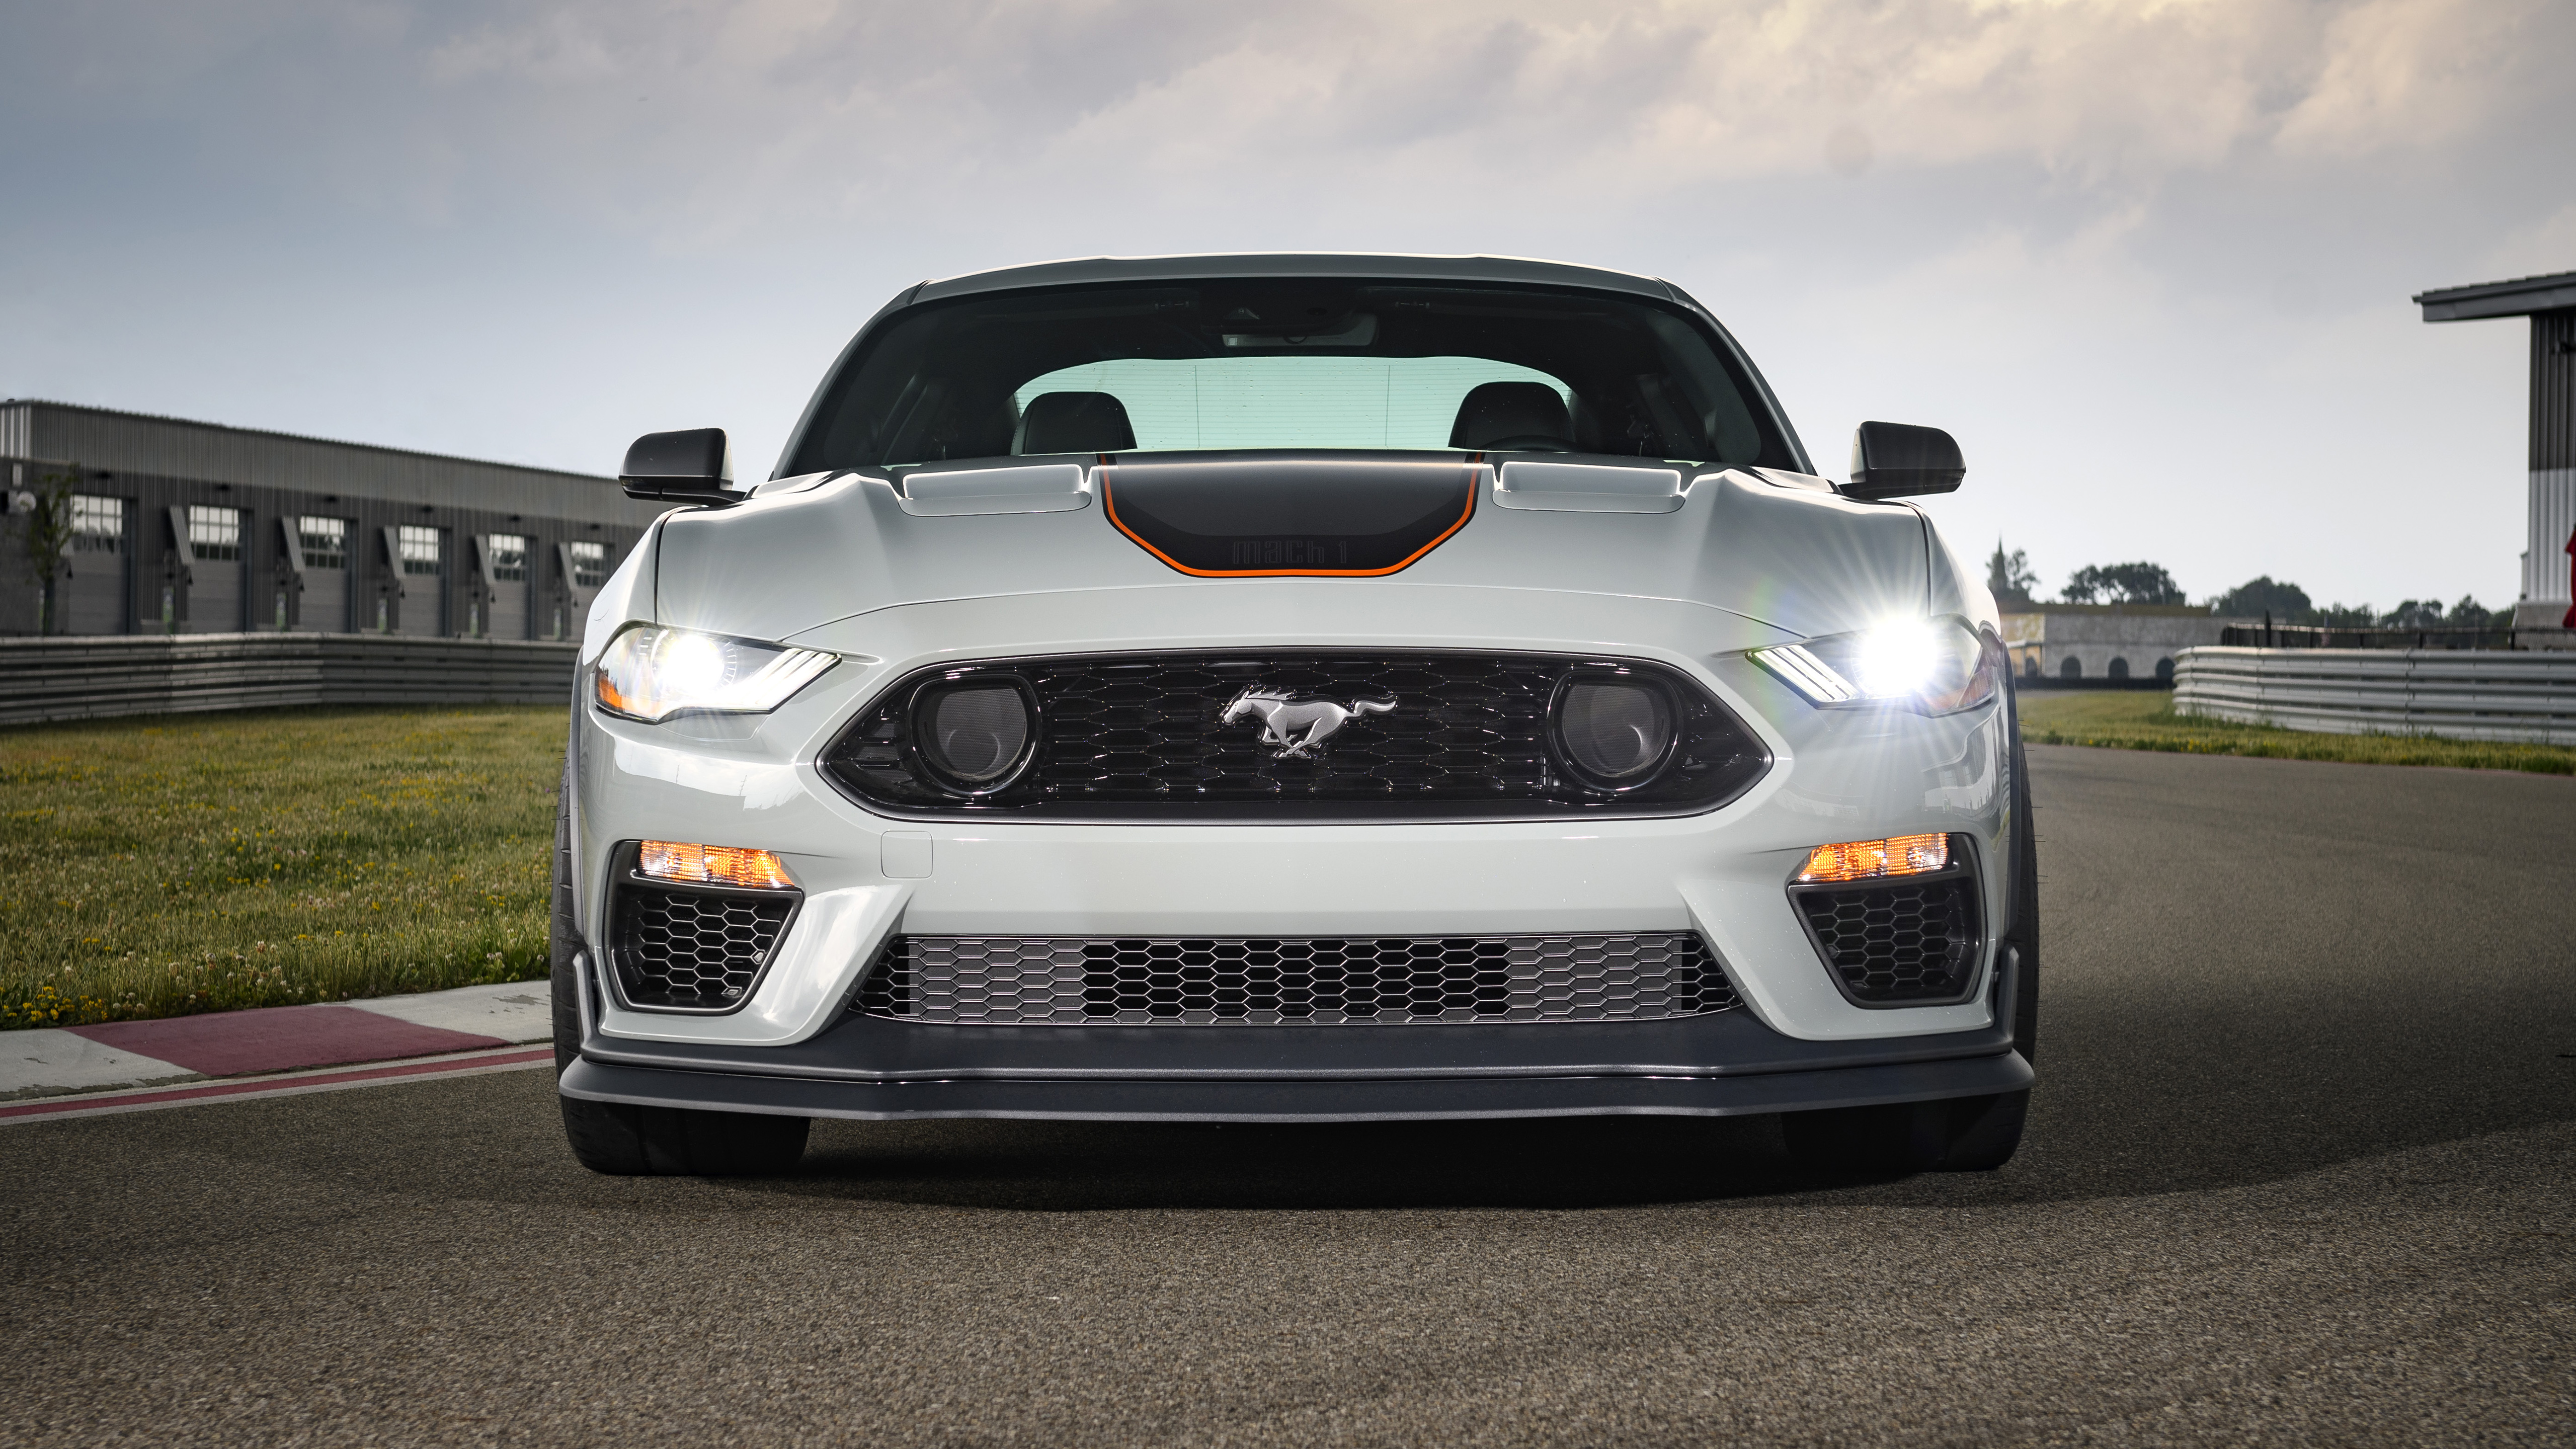 2021 Ford Mustang Mach 1 Gt